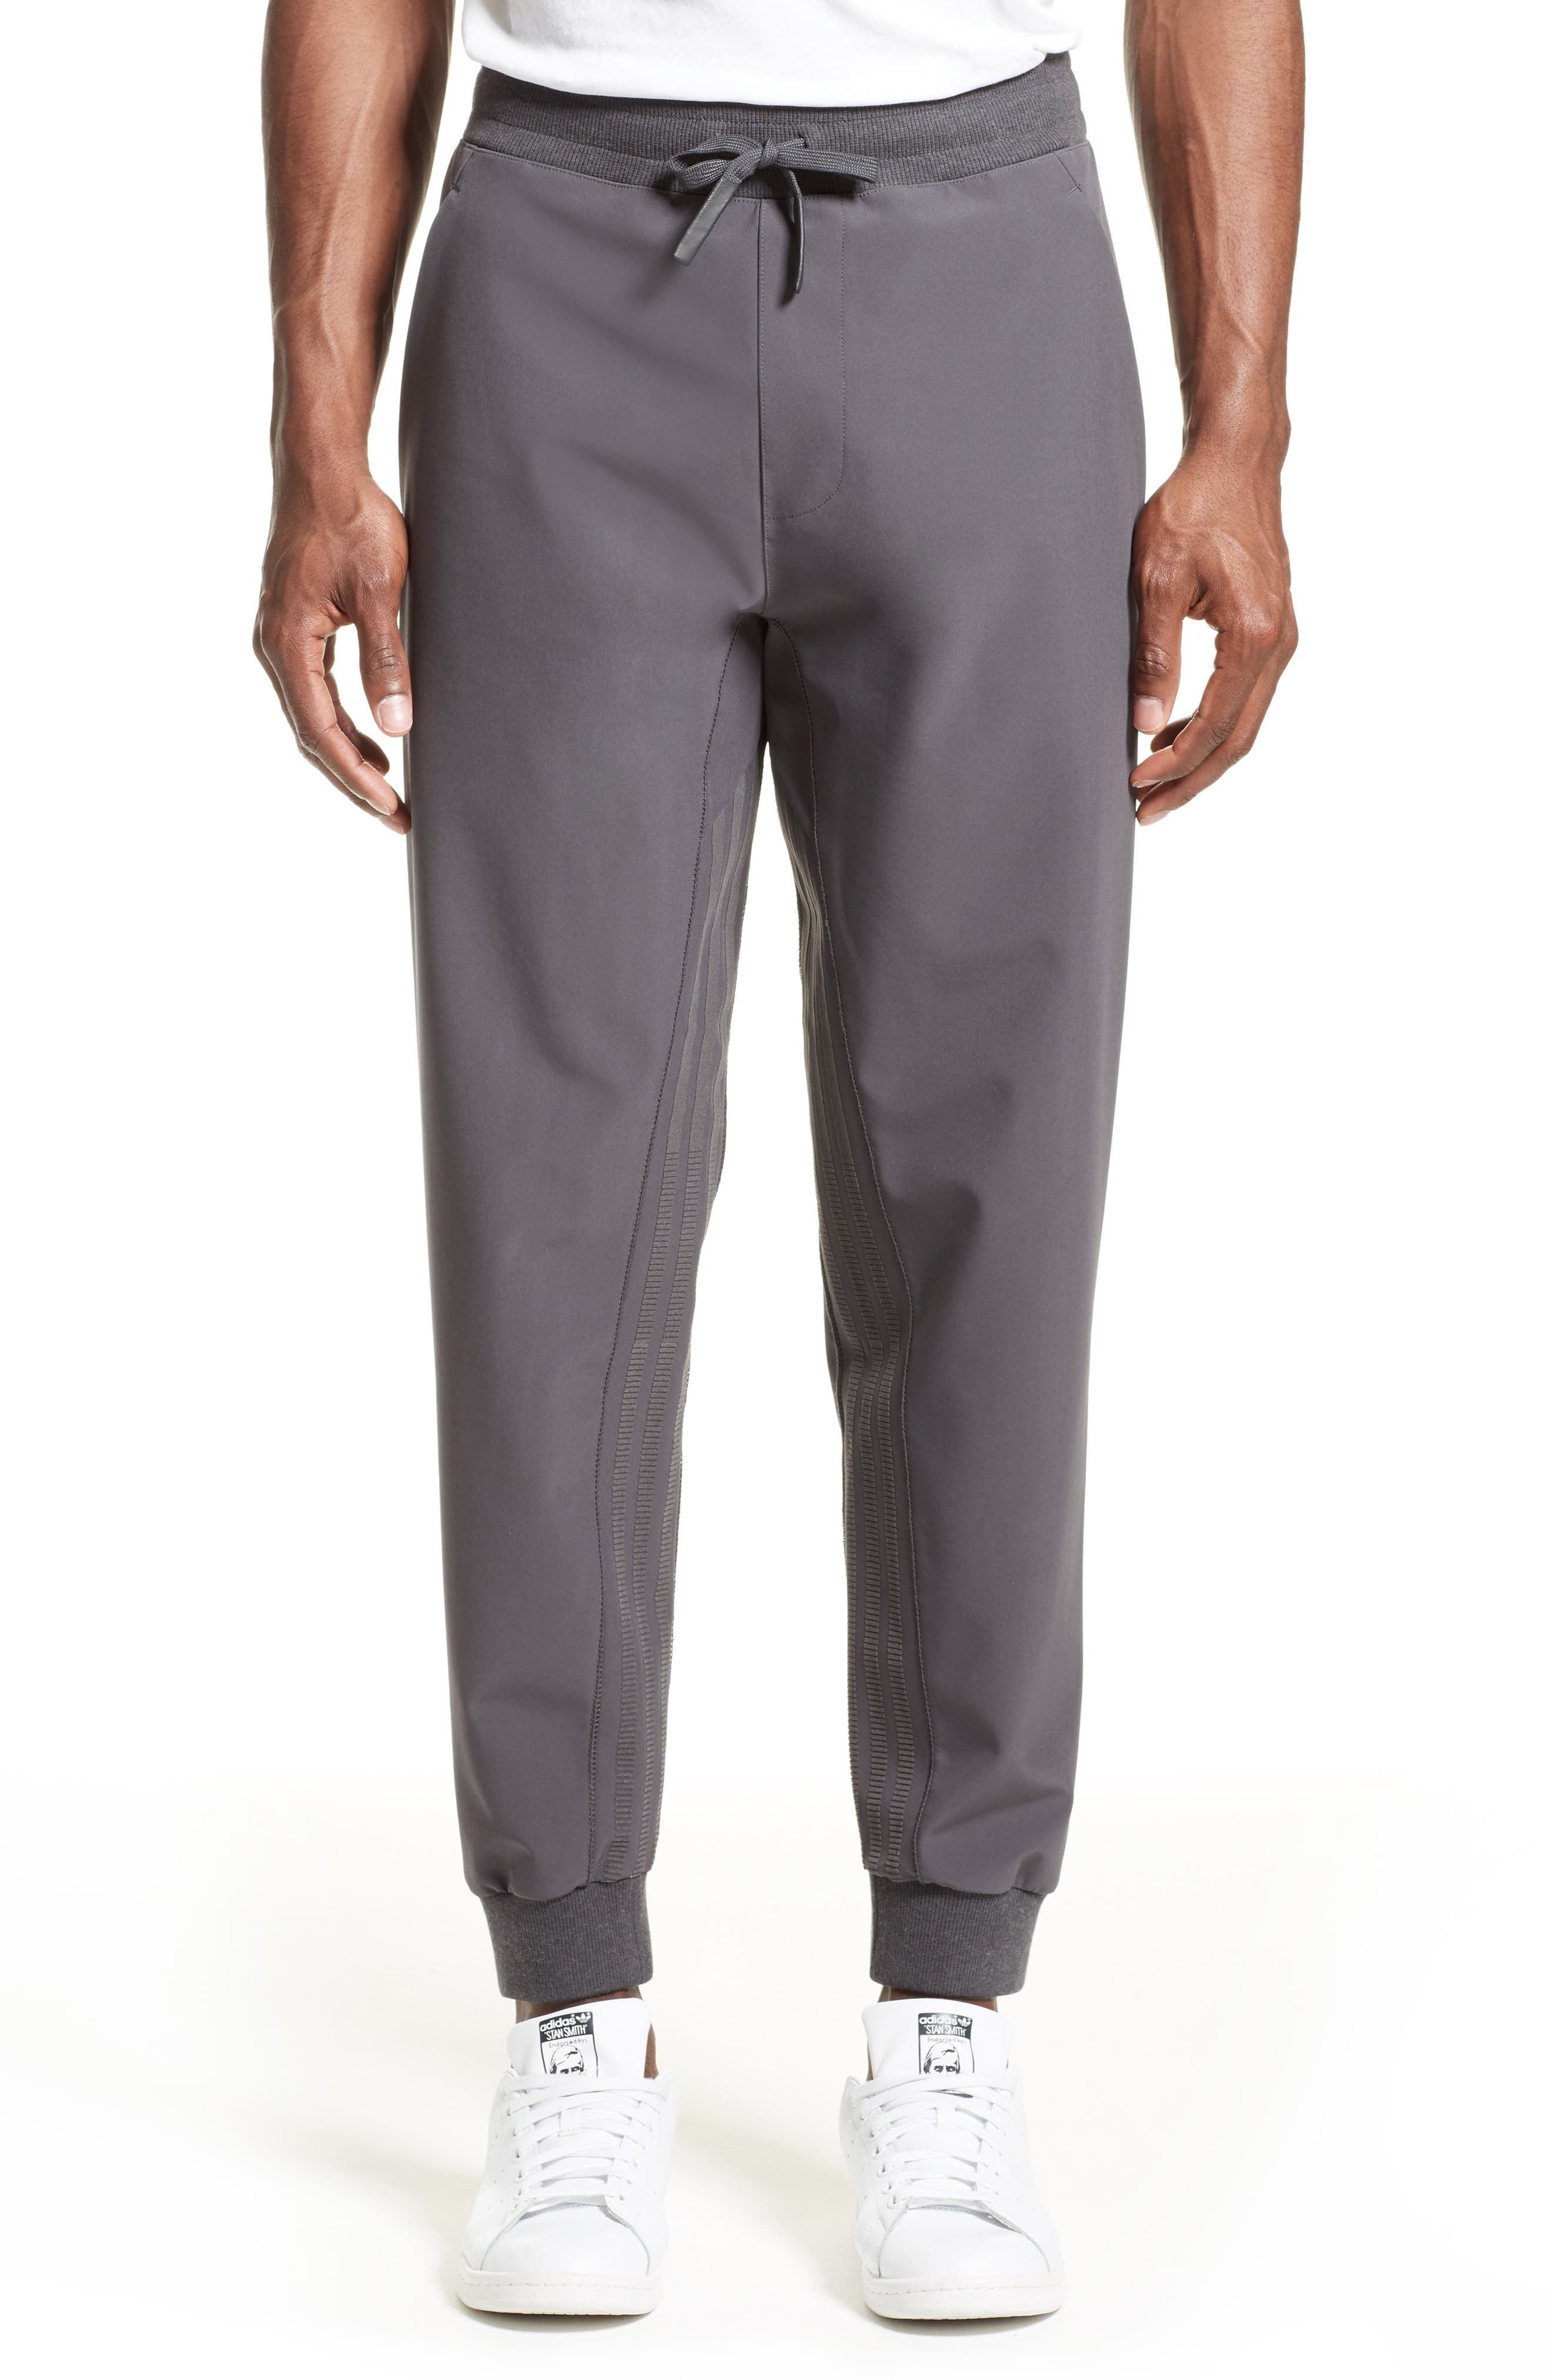 wings + horns x adidas Track Pants